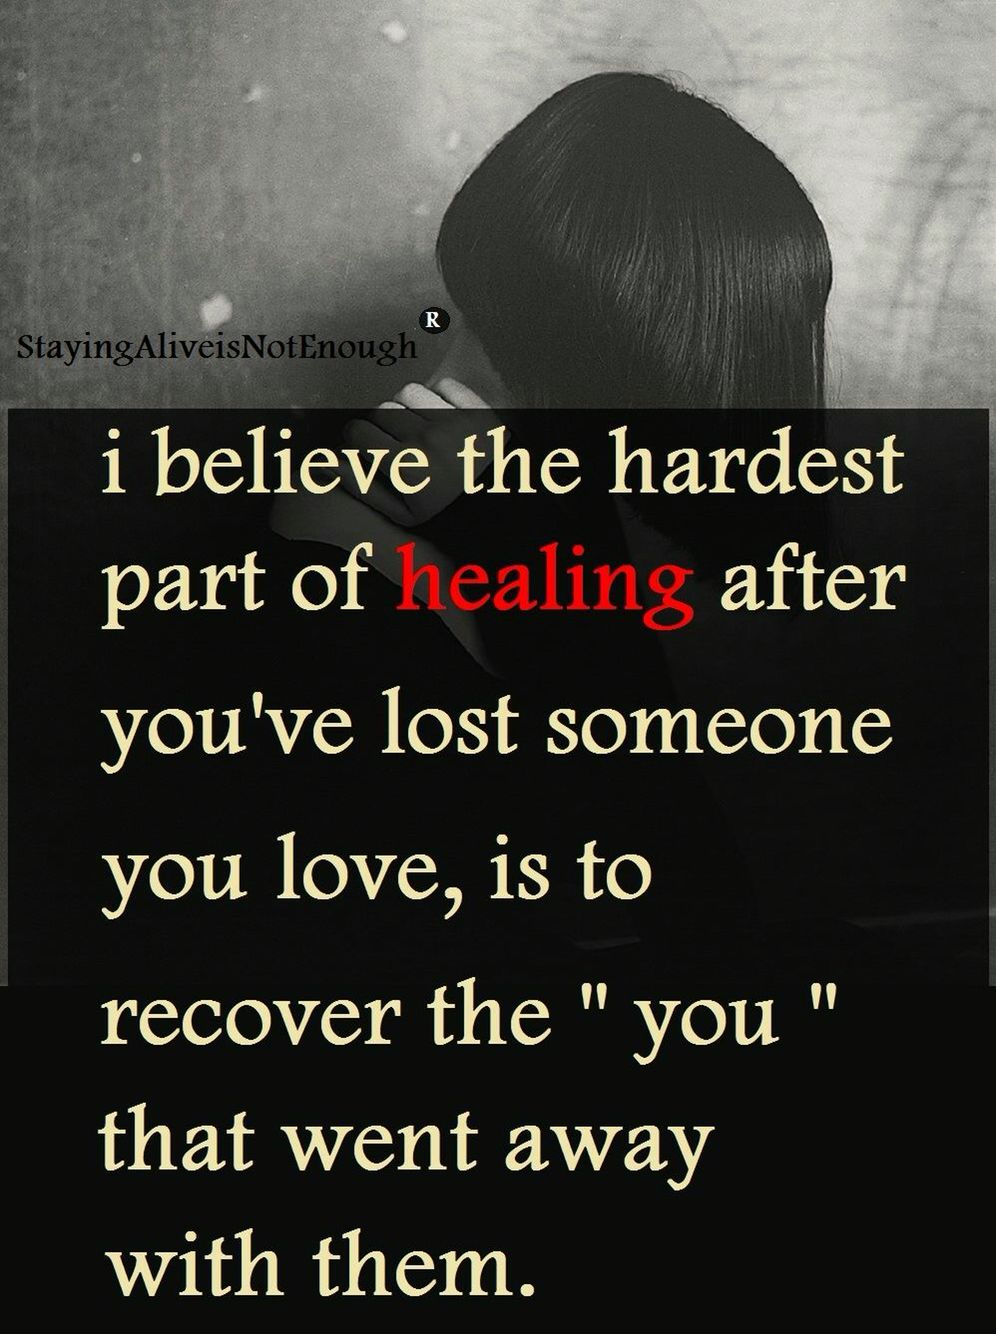 Inspirational Quotes After Losing A Loved One Pinyvonne Wynn On Angels Wings  Pinterest  Grief And Infj